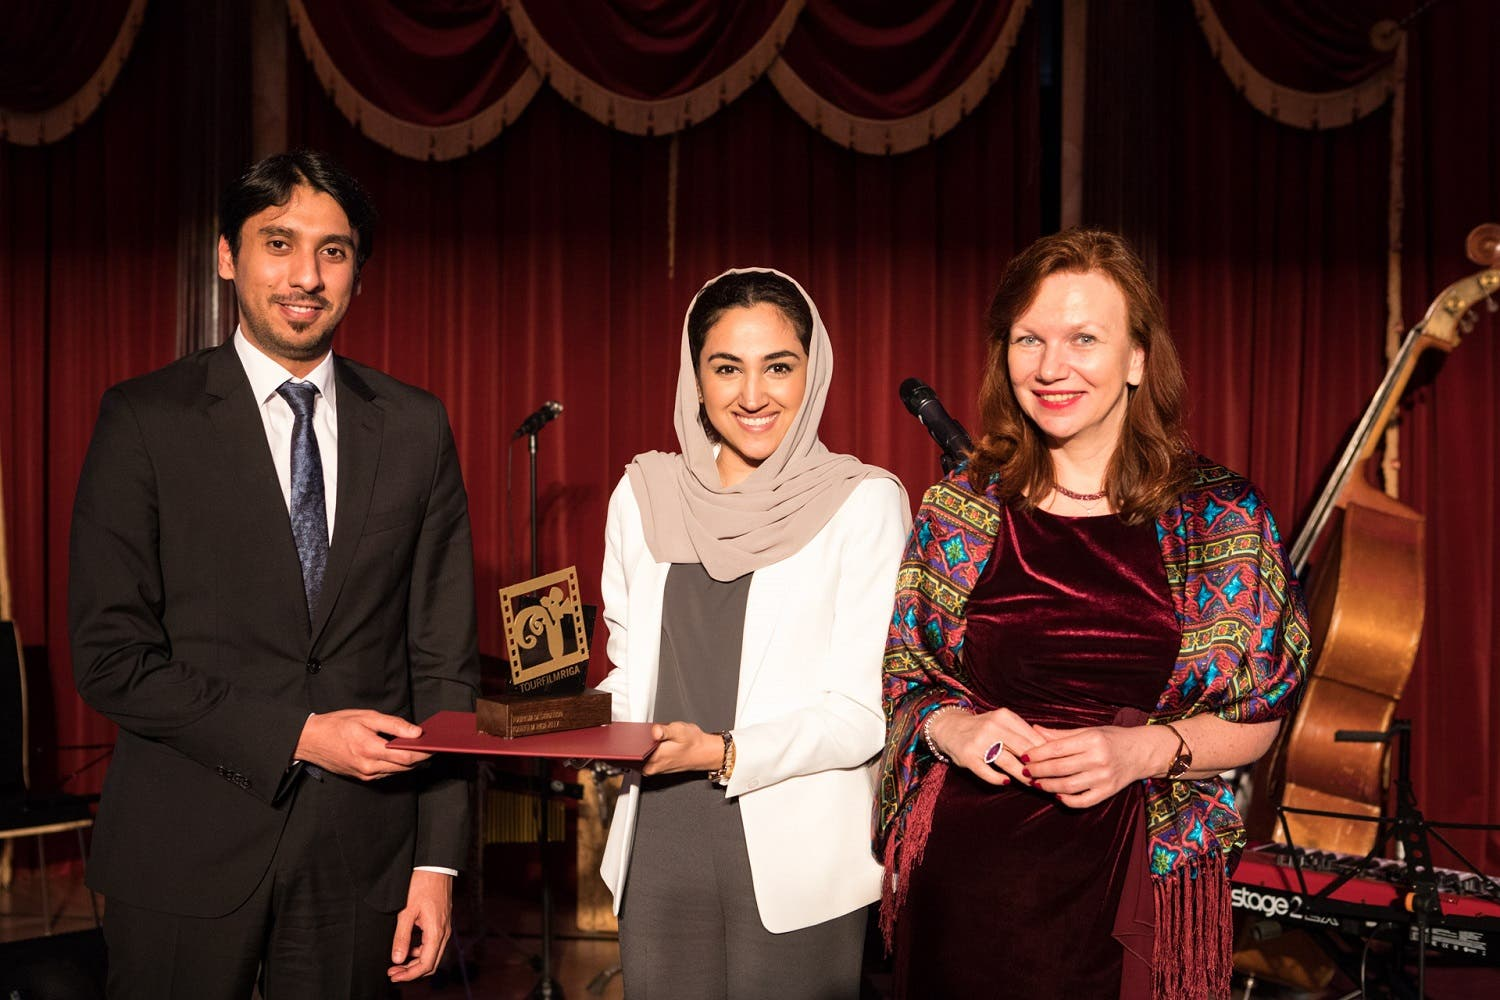 Ahlam AbdulMajeed Bolooki, Senior Manager Campaigns, Campaign Management, Dubai Tourism, who received the award on behalf of Dubai Tourism,  is pictured here at the event along with Yousof Naser AlMazrouei, Charge d'Affaires at the UAE Embassy in Latvia.